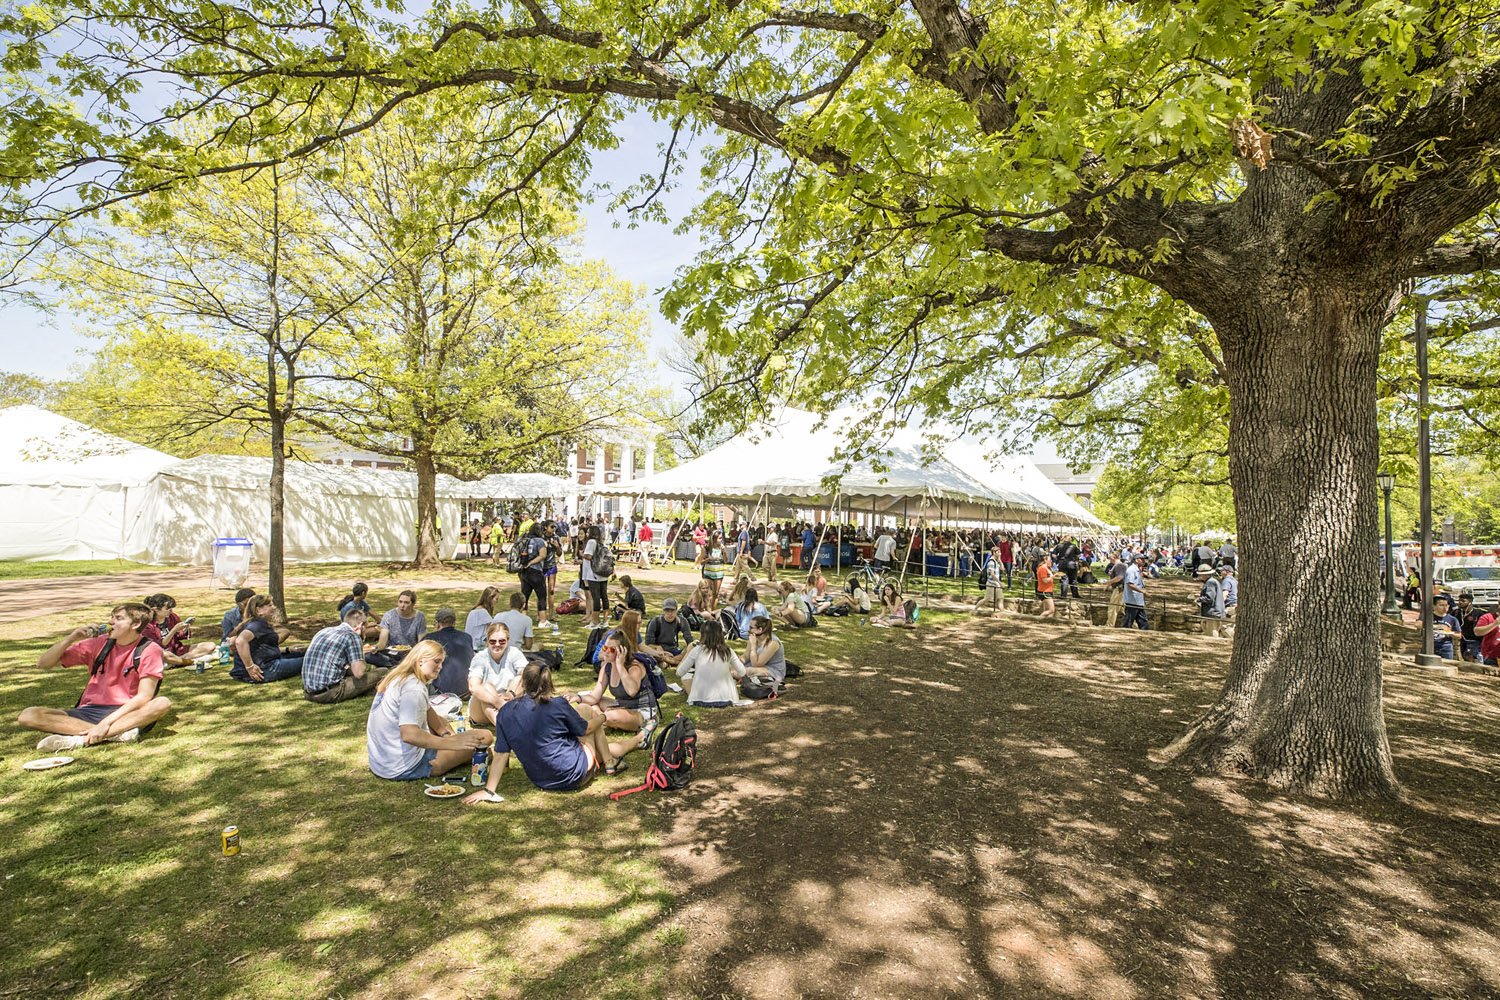 Diners relax under a shade tree at the picnic celebrating University President Teresa A. Sullivan on Wednesday.